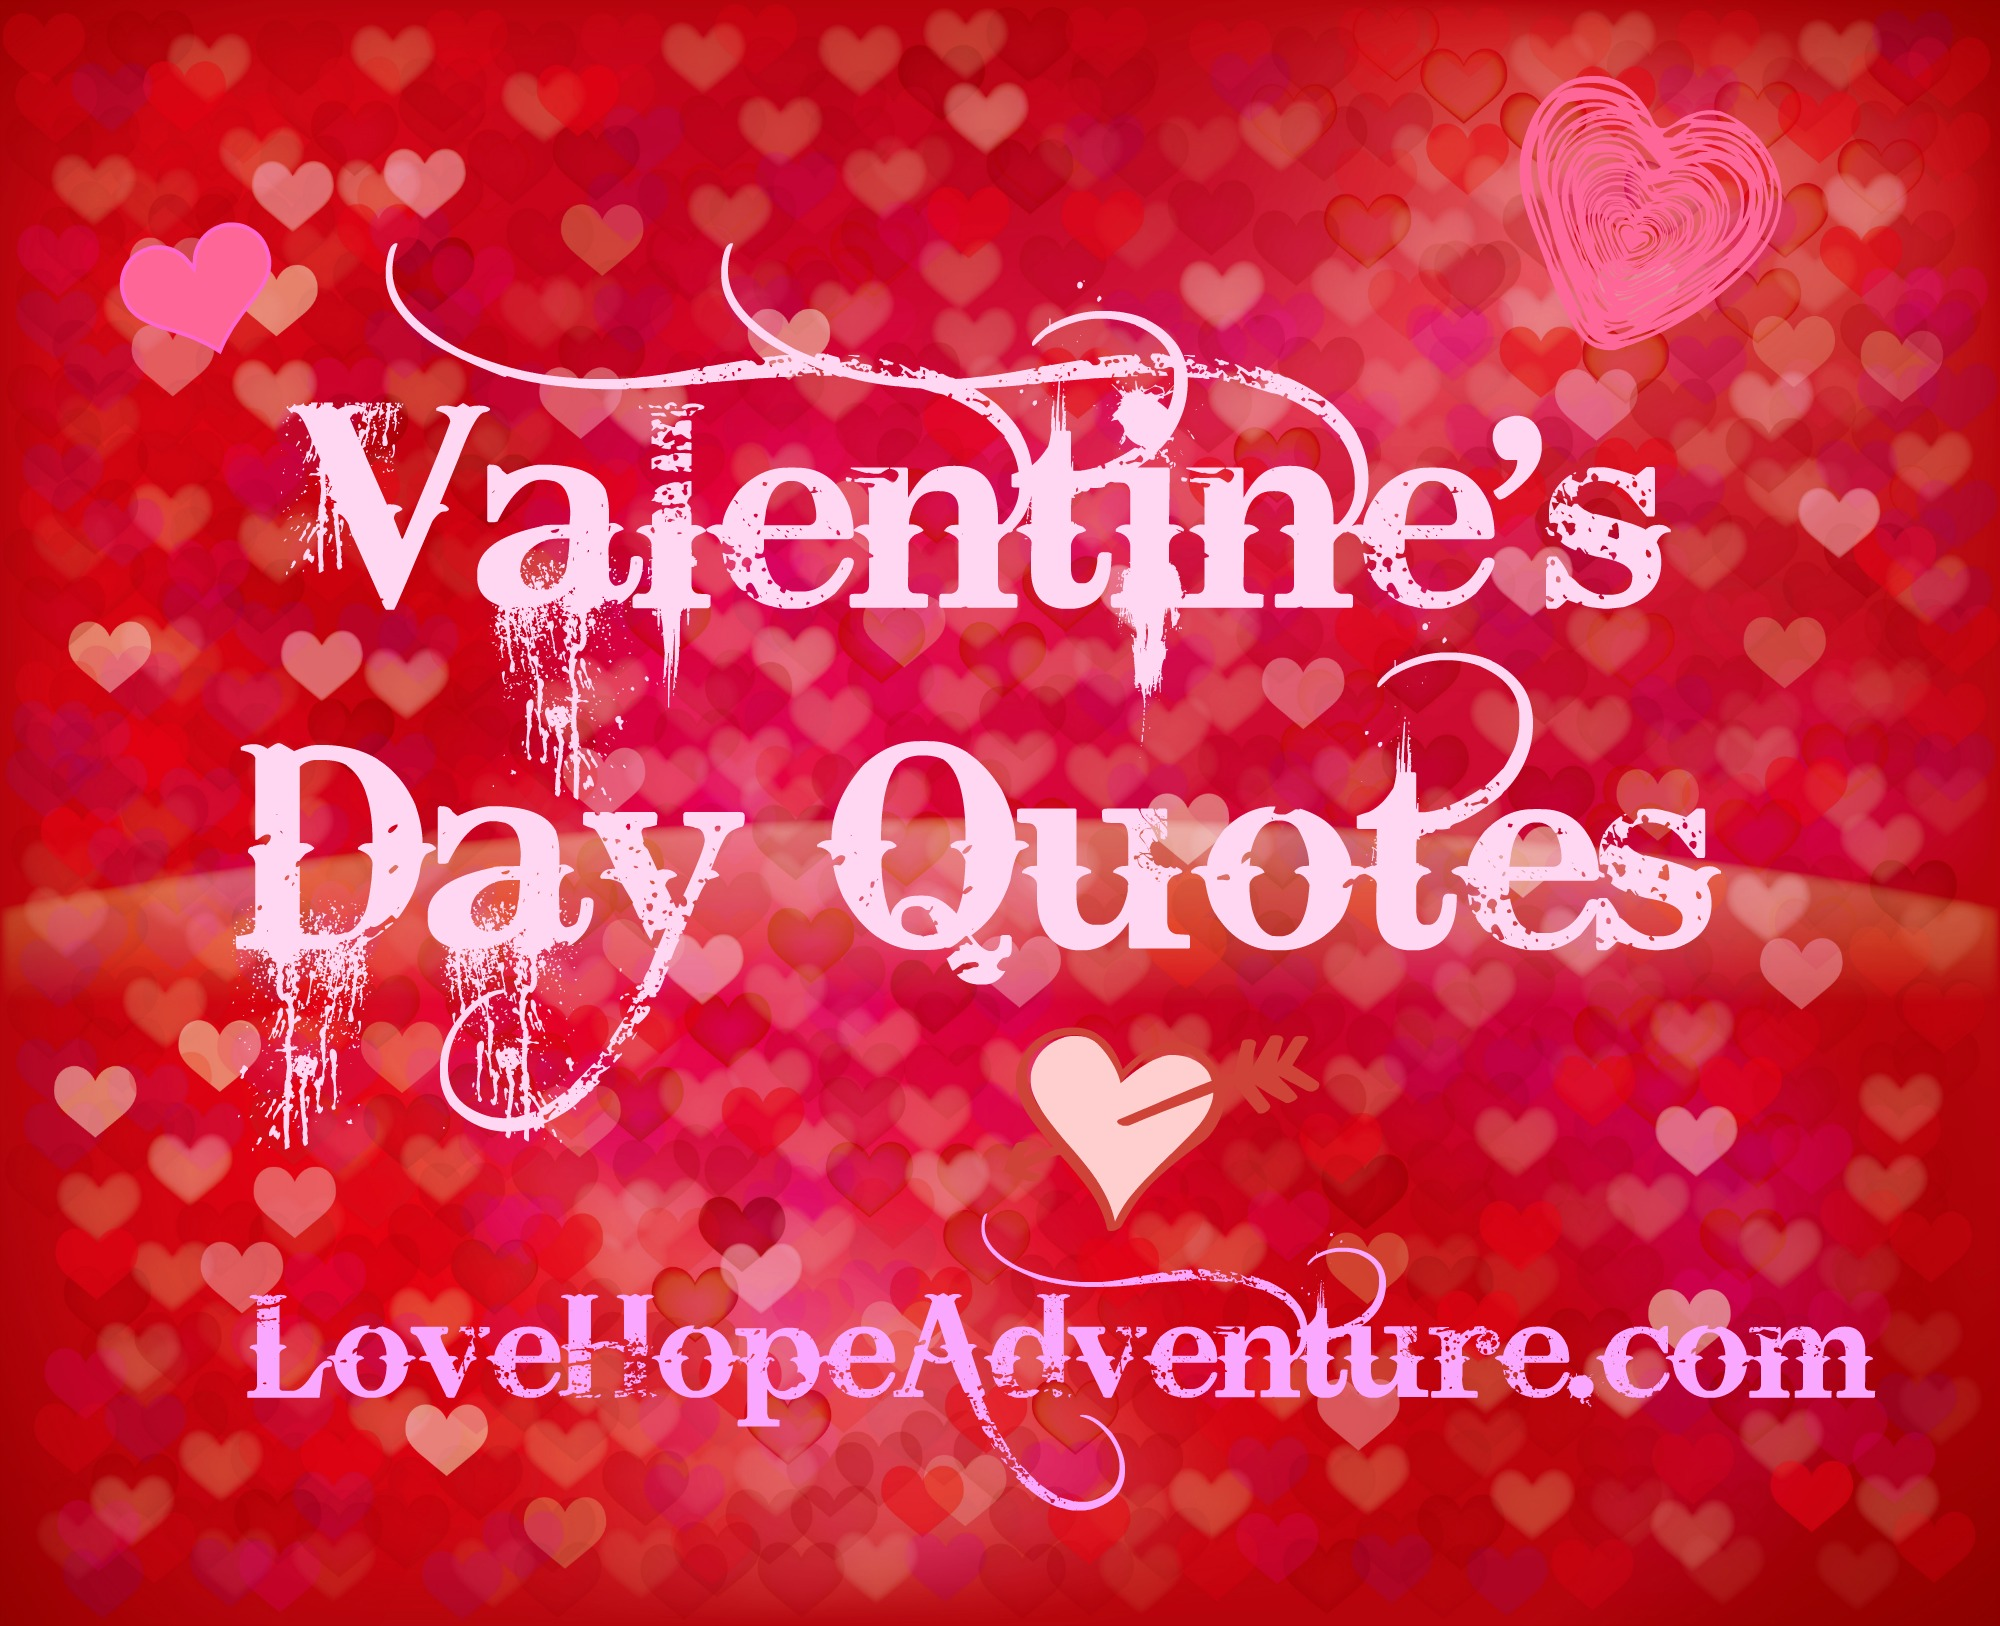 Valentine 39 s day quotes love hope adventure for Love valentines day quotes